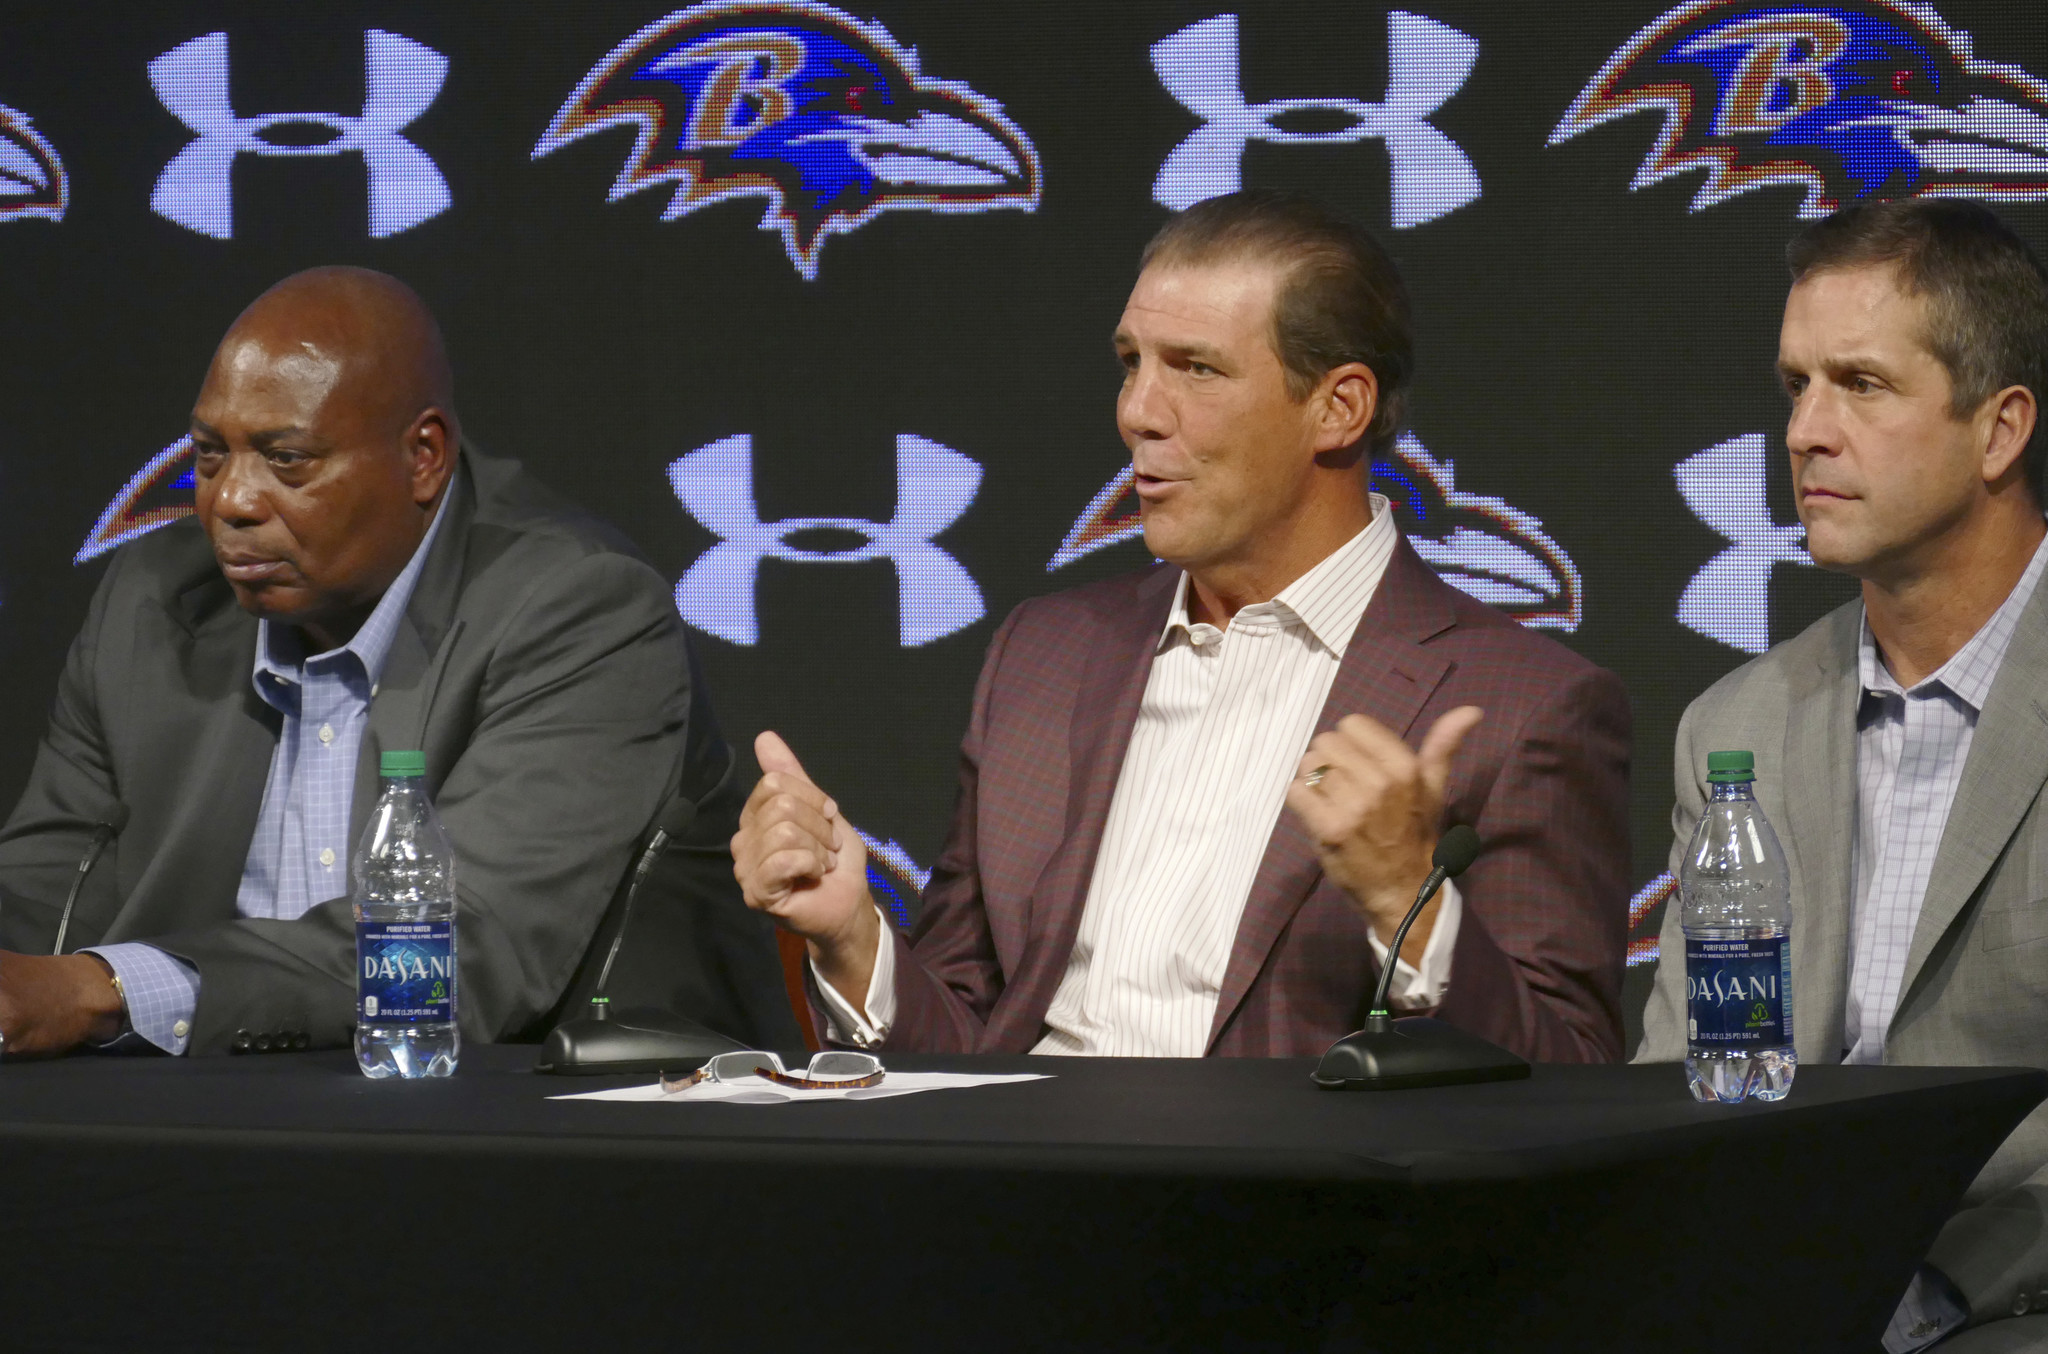 Bal-owner-steve-bisciotti-isn-t-buying-notion-that-ravens-have-to-go-younger-to-succeed-20170116